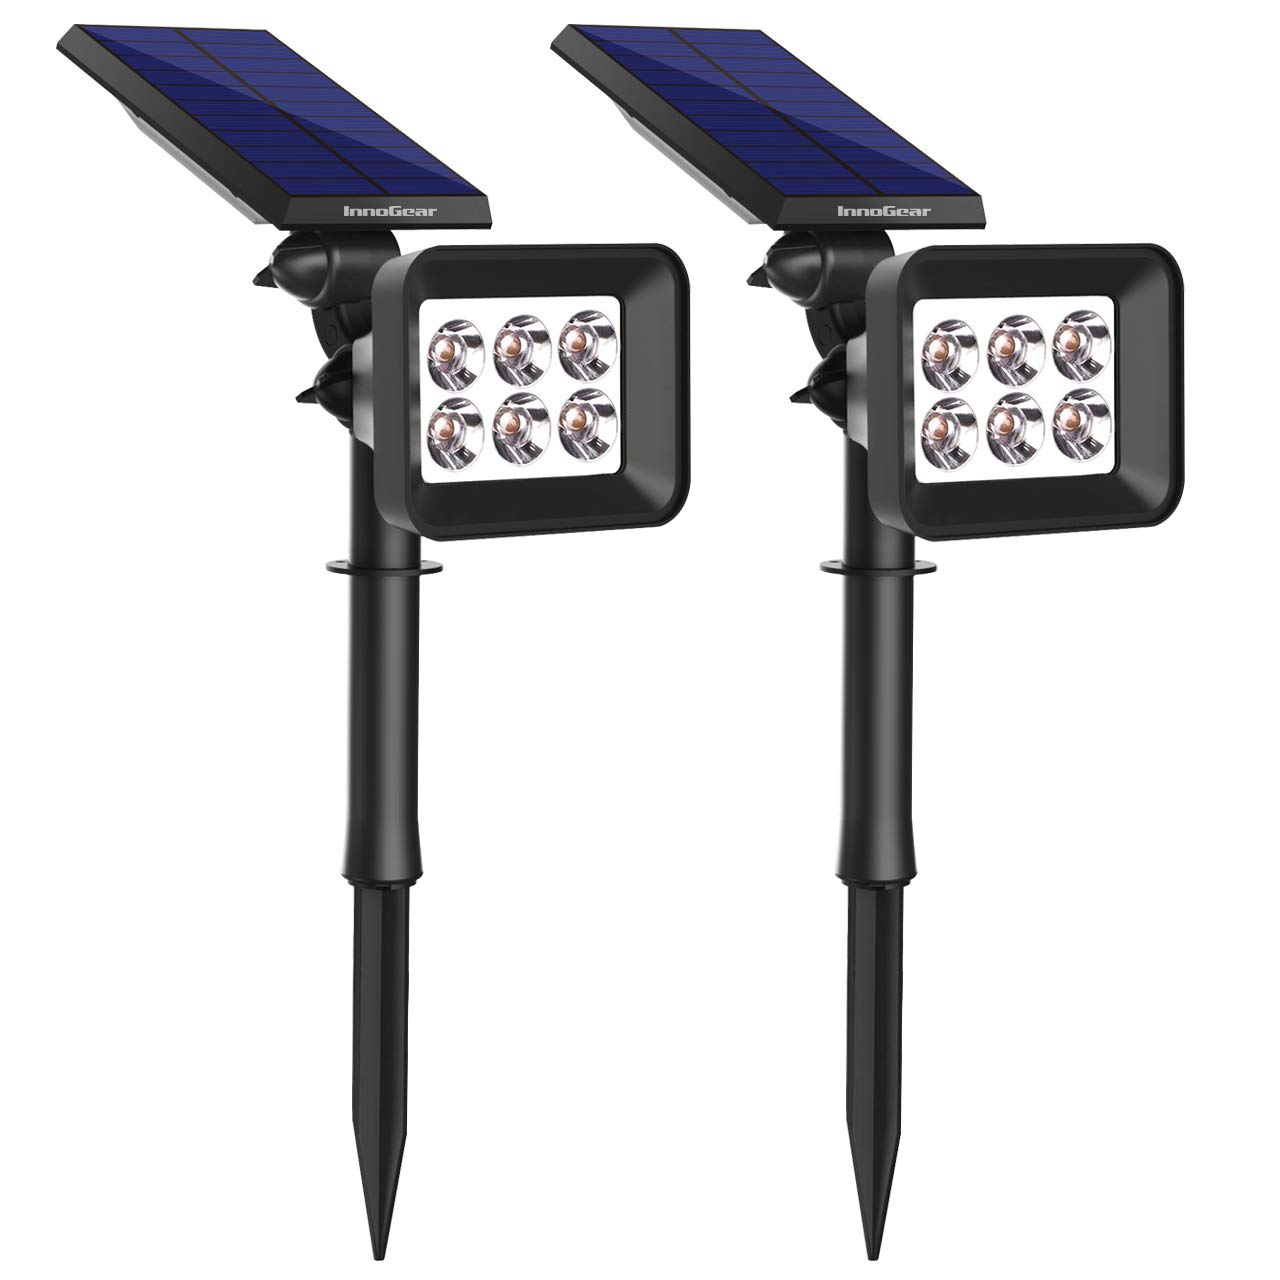 InnoGear Upgraded 6 LED Solar Landscape Spotlights 2-in-1 Wireless IP65 Waterproof Auto On/Off Outdoor Solar Landscaping Lights for Yard Garden Driveway Pathway Pool, Pack of 2 (White Light) by InnoGear